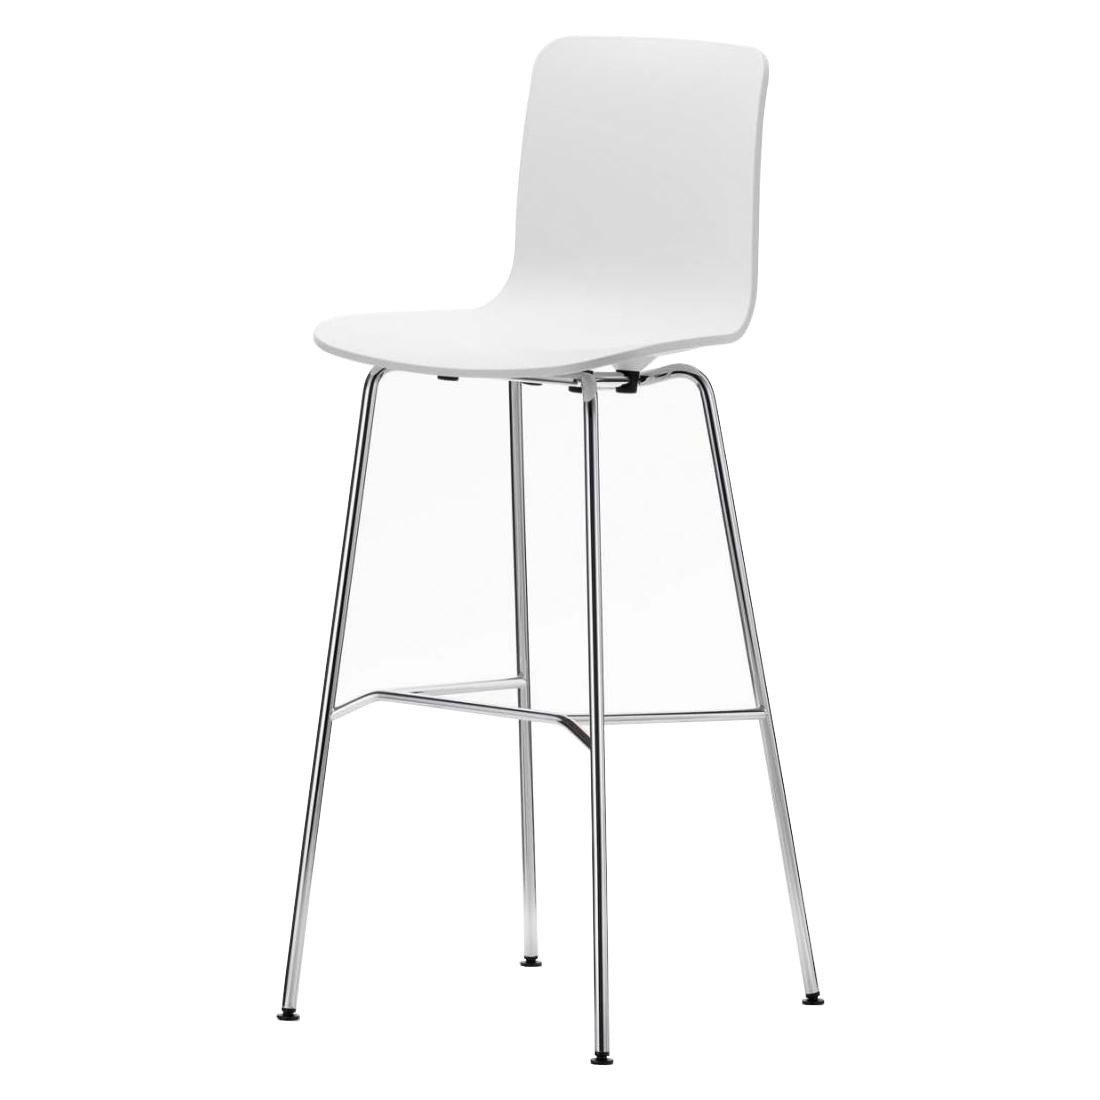 White High Hal Stool With Light-Coloured Metal Legs